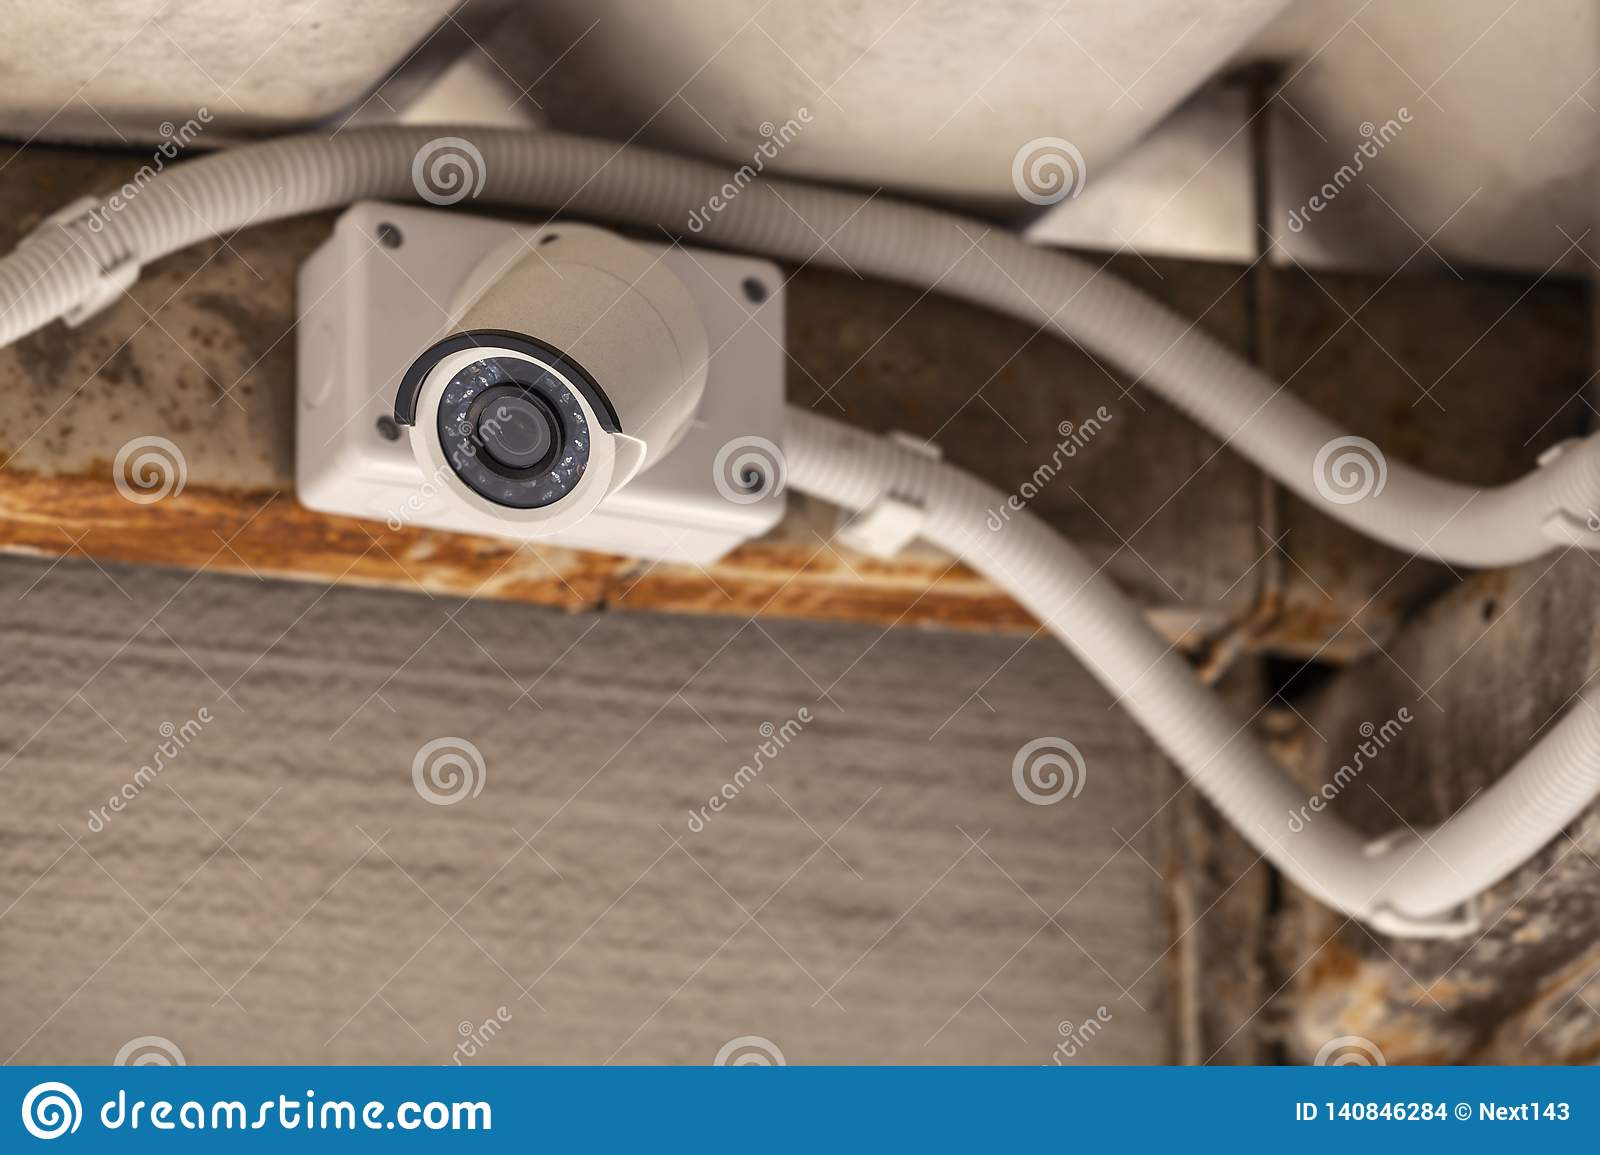 CCTV mounted on ceiling under the roof